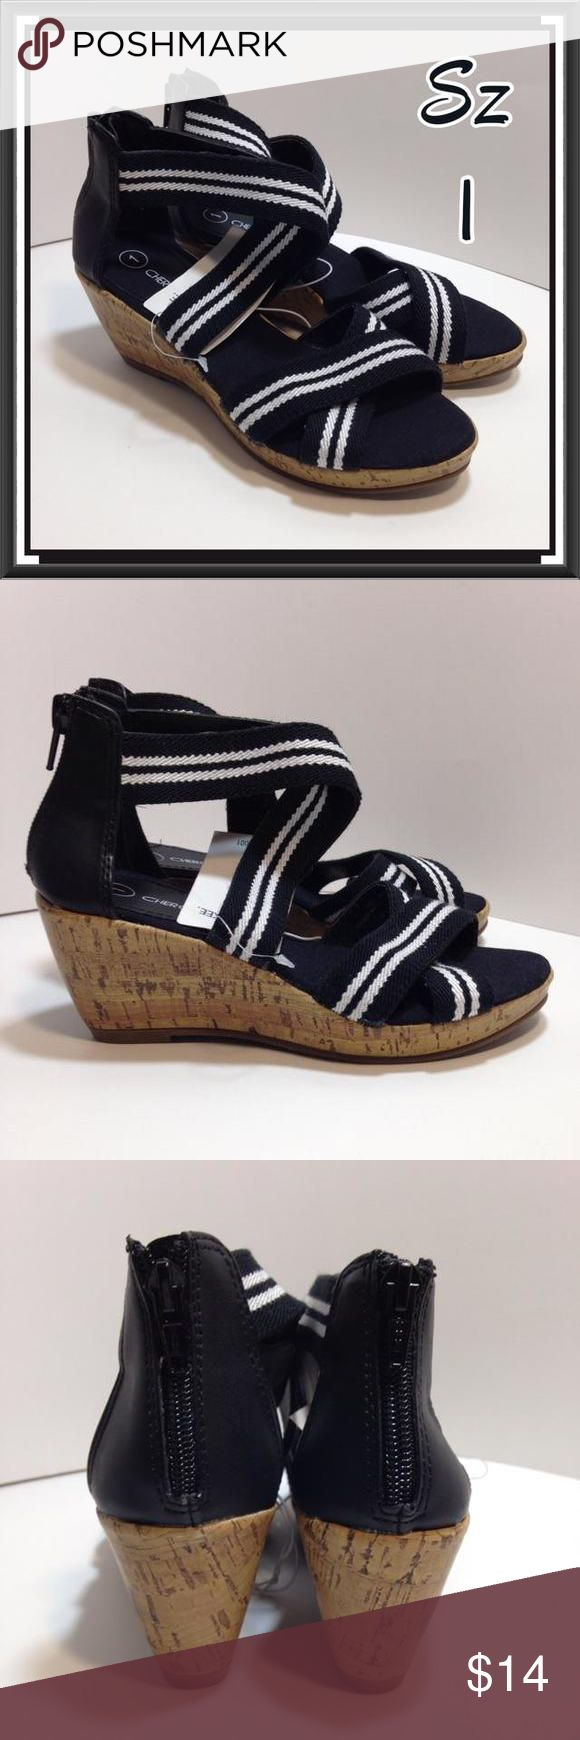 NEW Black & White Wedge Sandals Youth Girls Size 1 Black and white stripe strappy sandals with faux leather heels. Cork wedge soles with black fabric cushioned insoles. Vertical zippers up the back from heel to ankle. Cherokee, Youth Size 1 Cherokee Shoes Sandals & Flip Flops